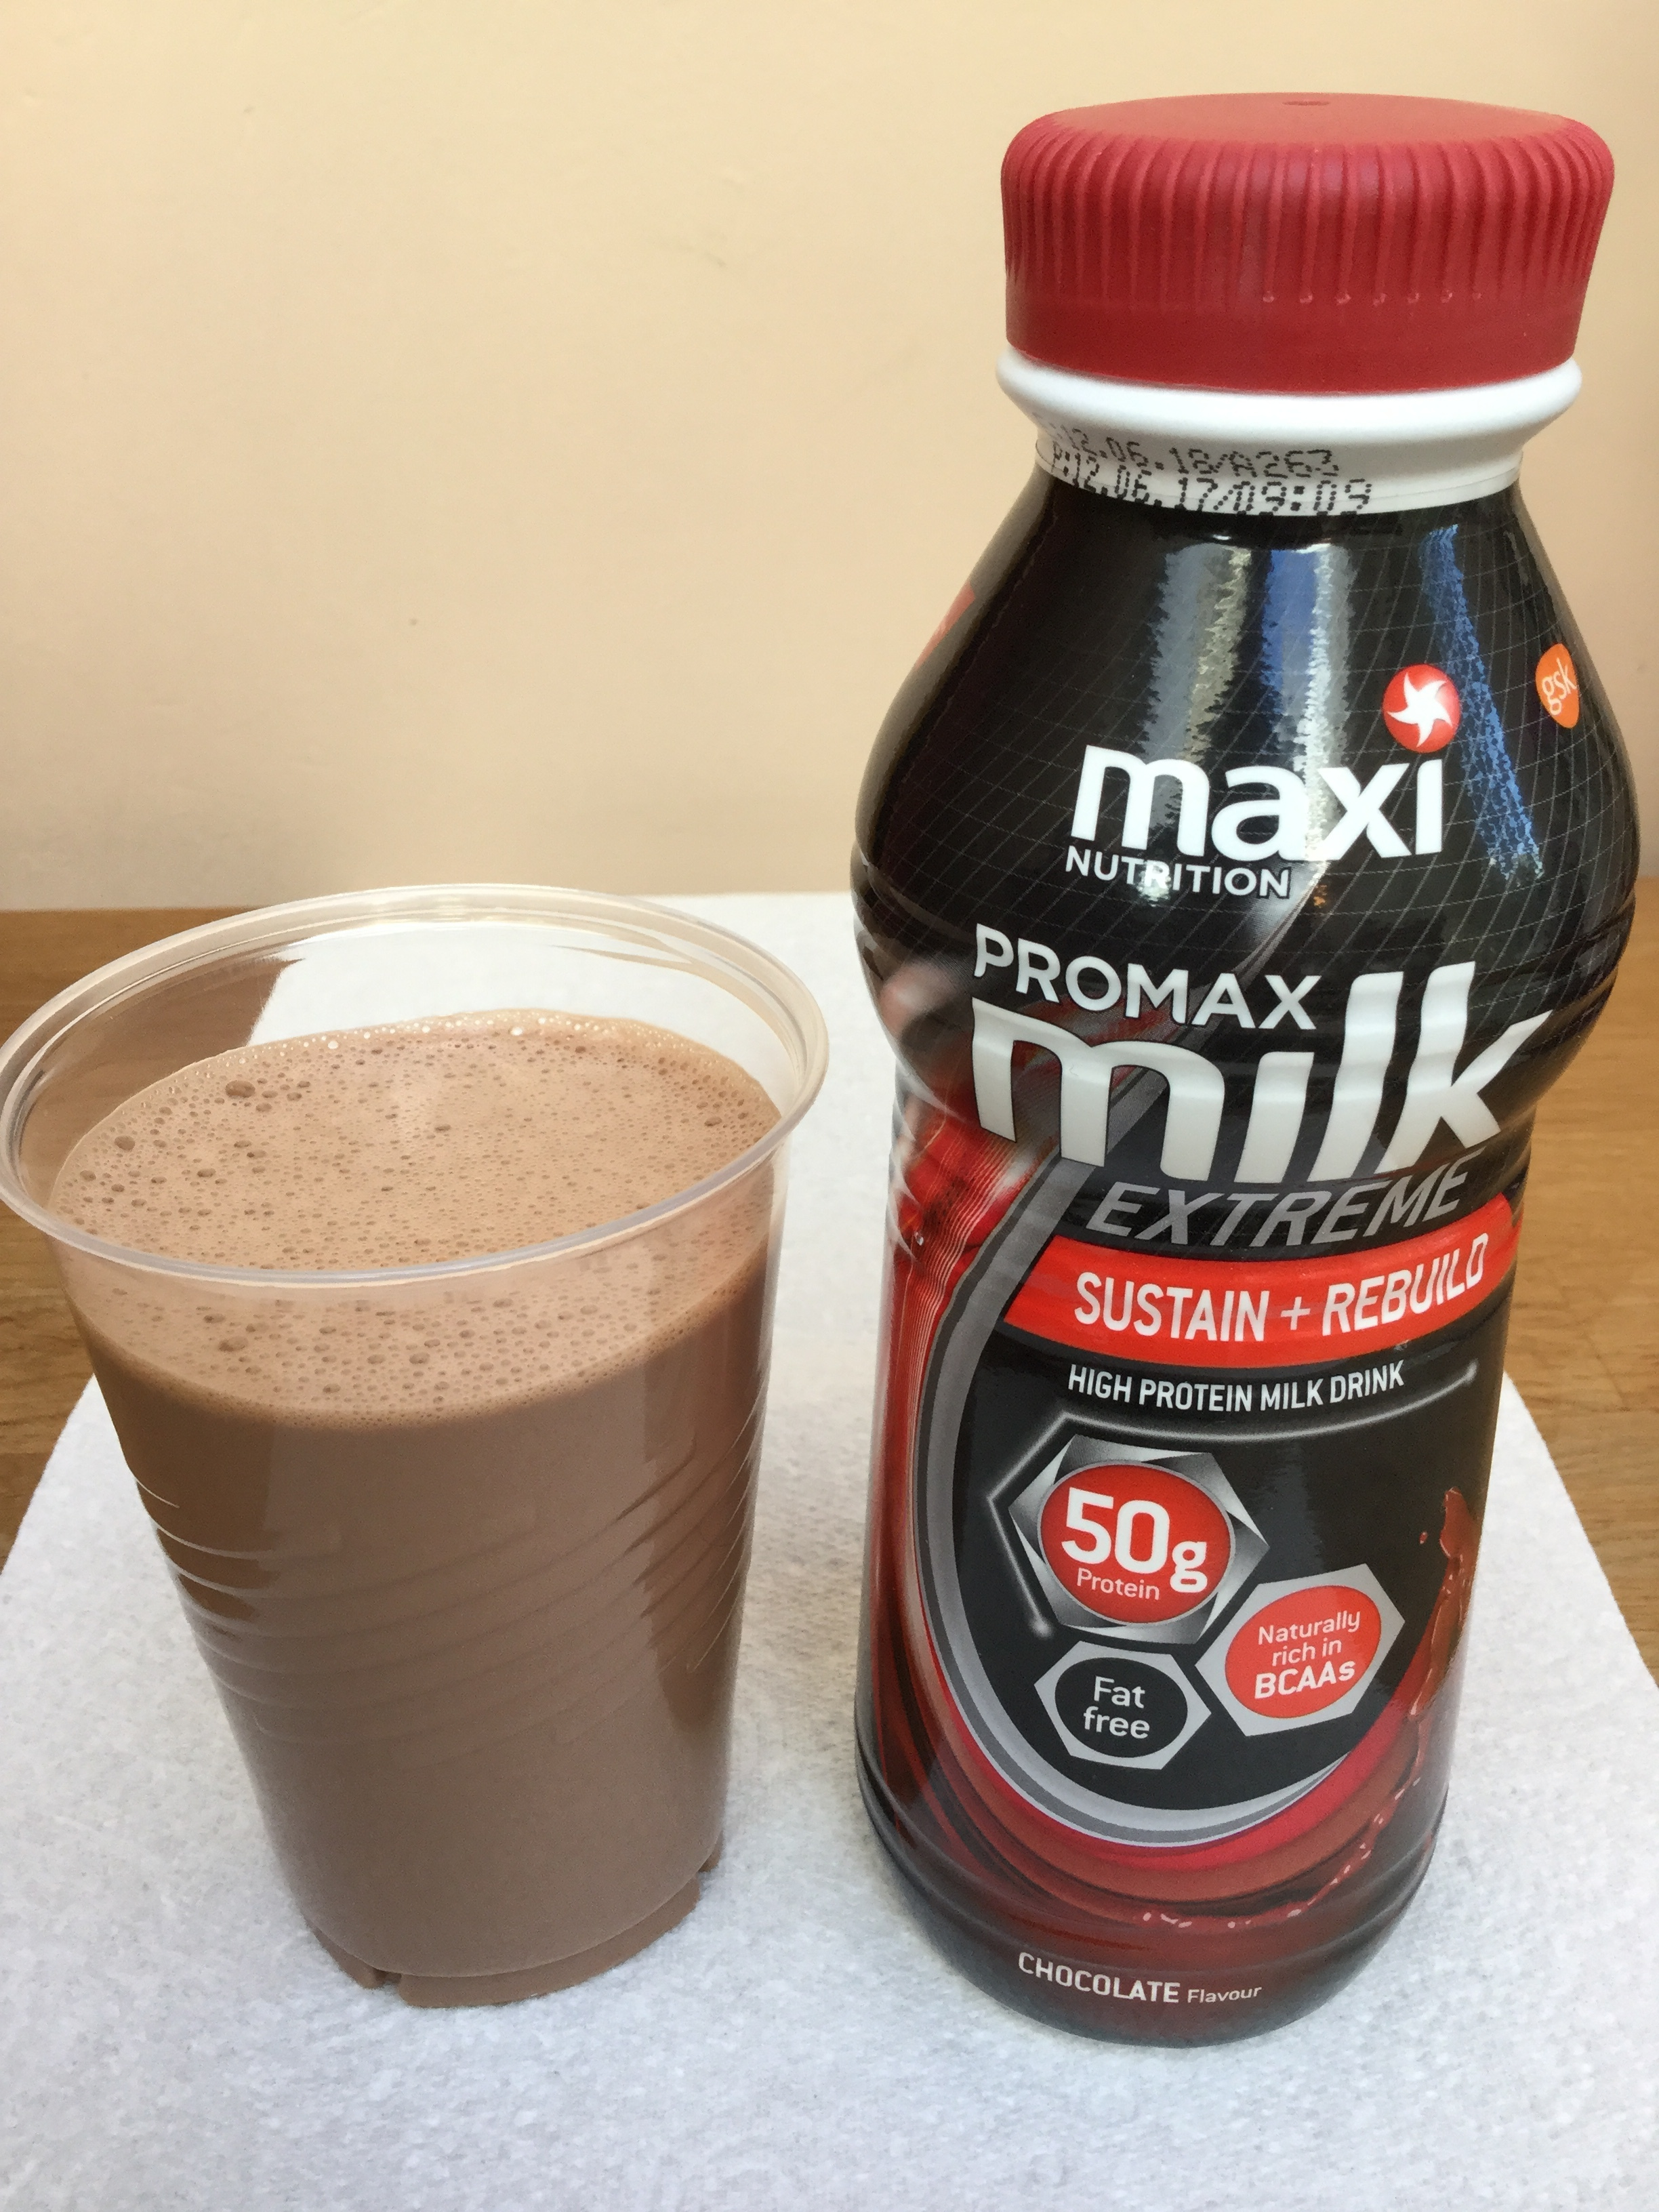 Maxi Nutrition Promax Milk Extreme Chocolate Cup